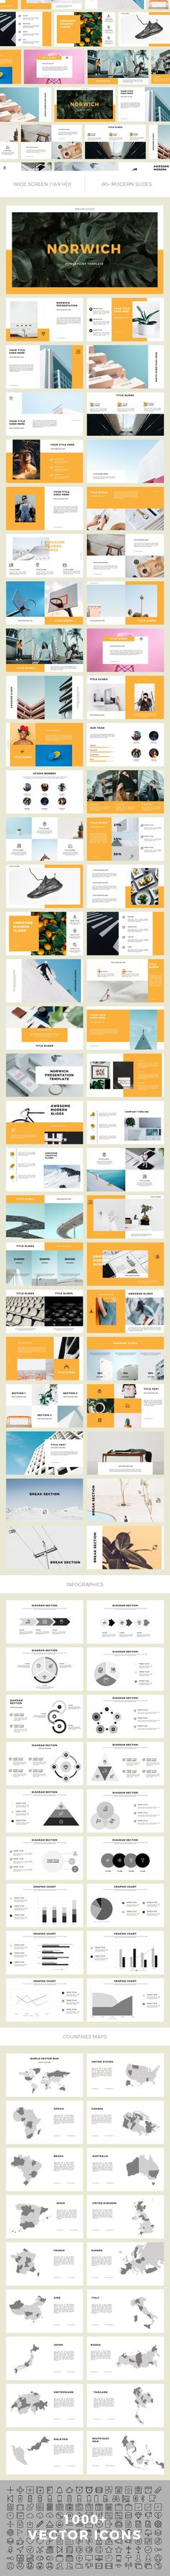 Norwich Keynote Template — Keynote KEY #keynote template #profile • Download ➝ https://graphicriver.net/item/norwich-keynote-template/21513485?ref=pxcr